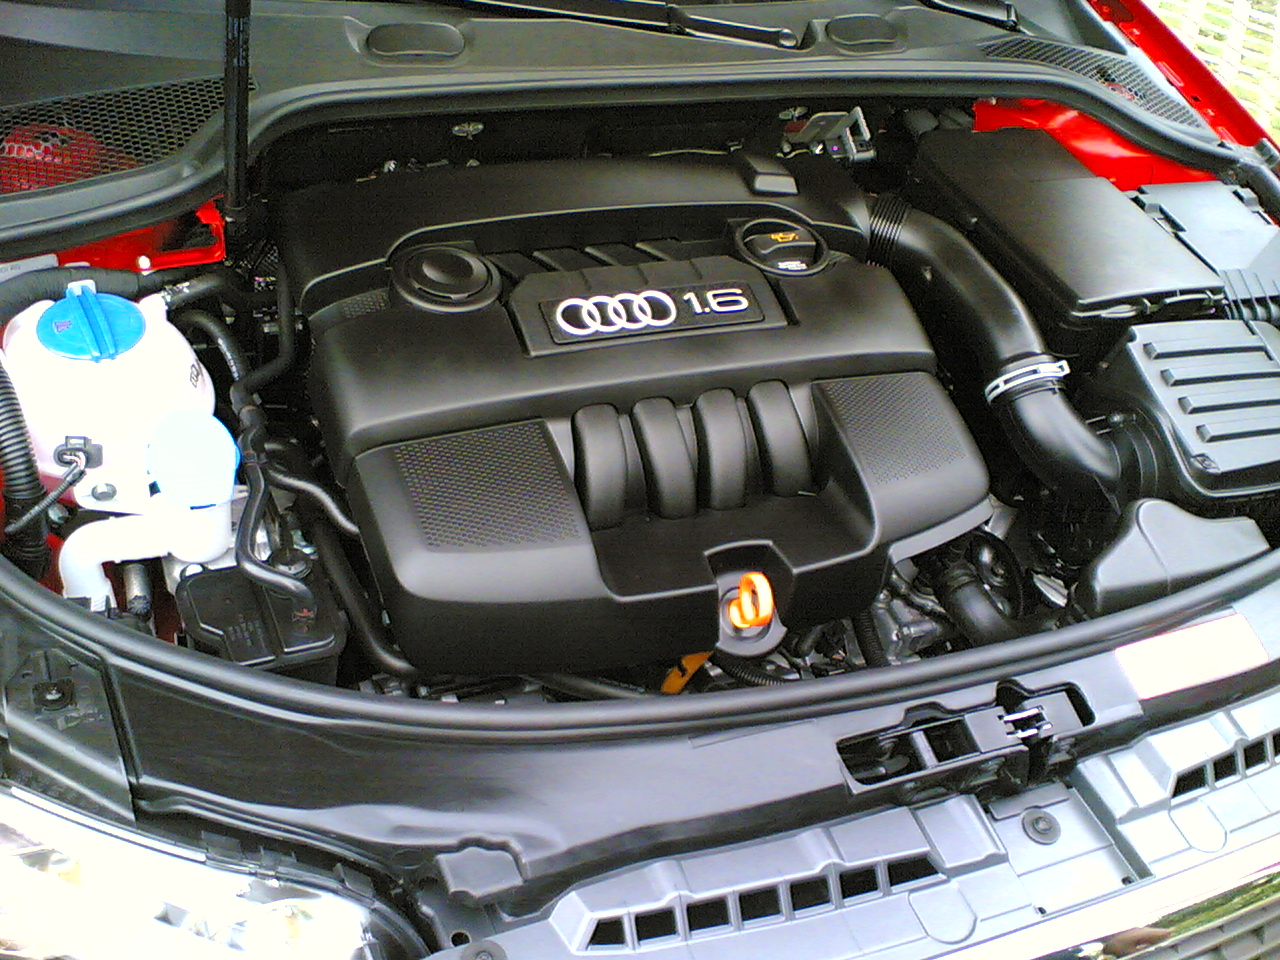 Audi Engine Schematics Tt Mk Diagram Wiring V6 Will Be A Thing E Bay Image A3 Diagrams On